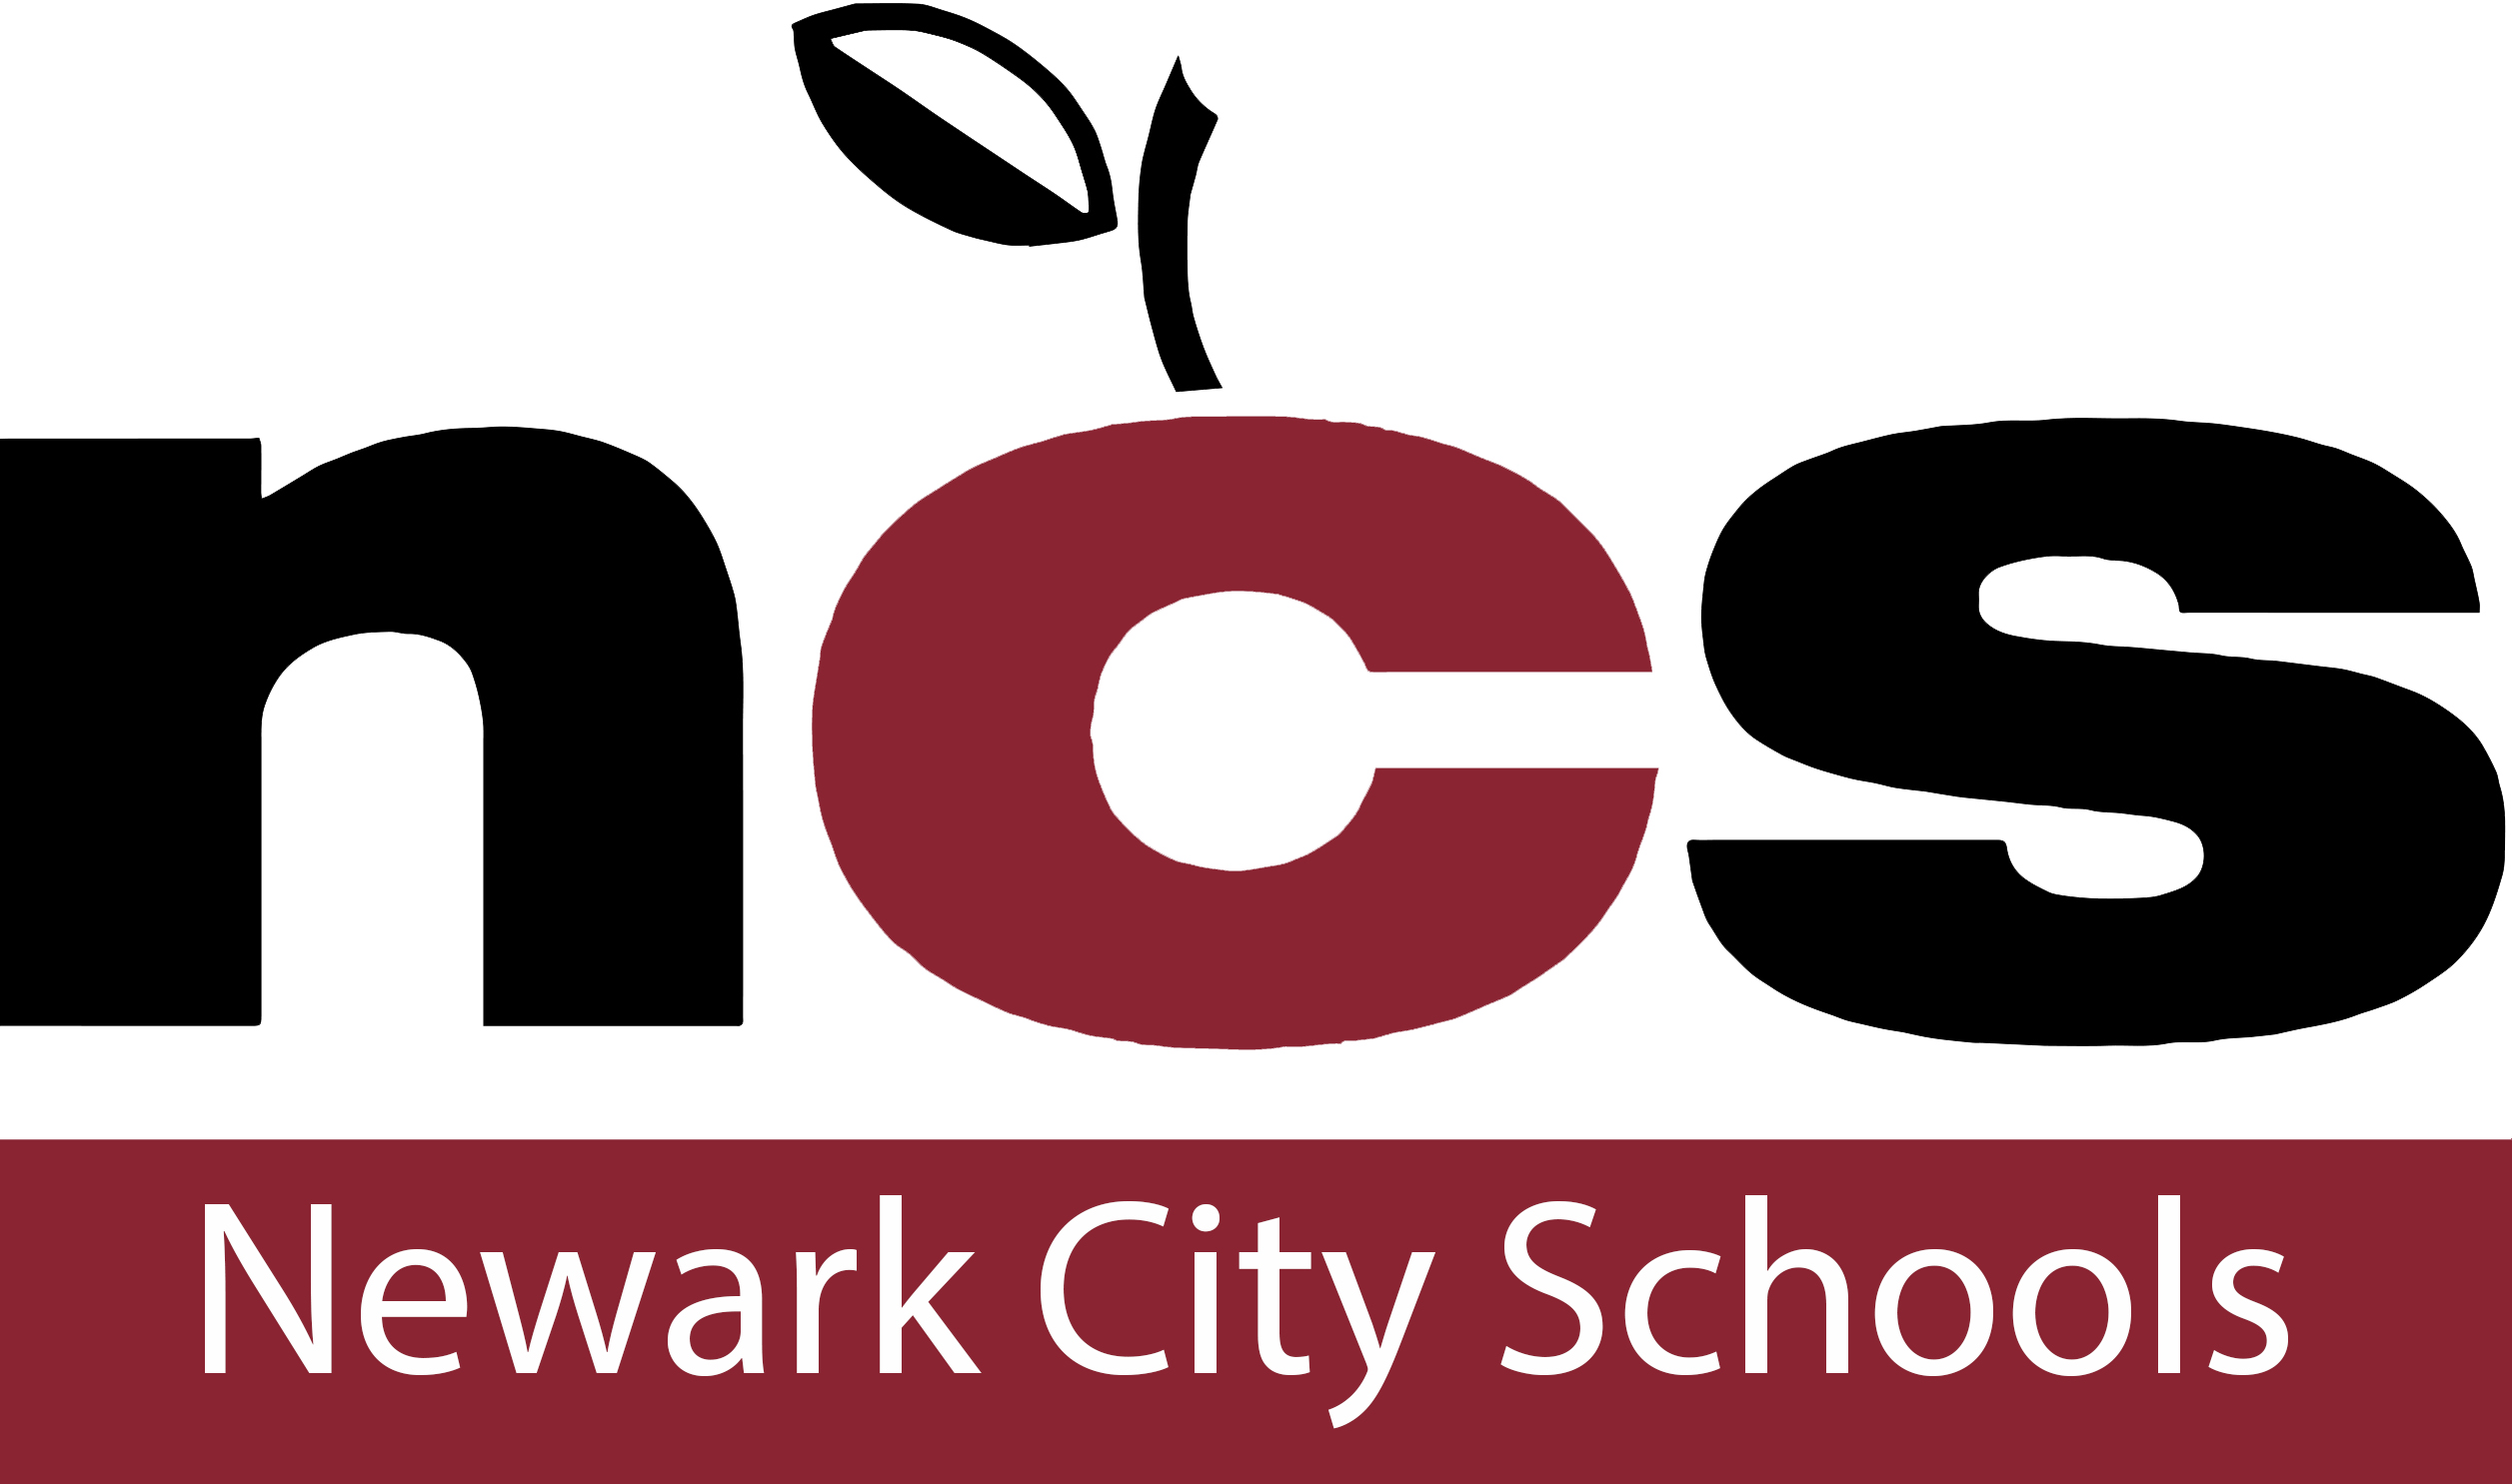 October board meeting moved to Oct. 16